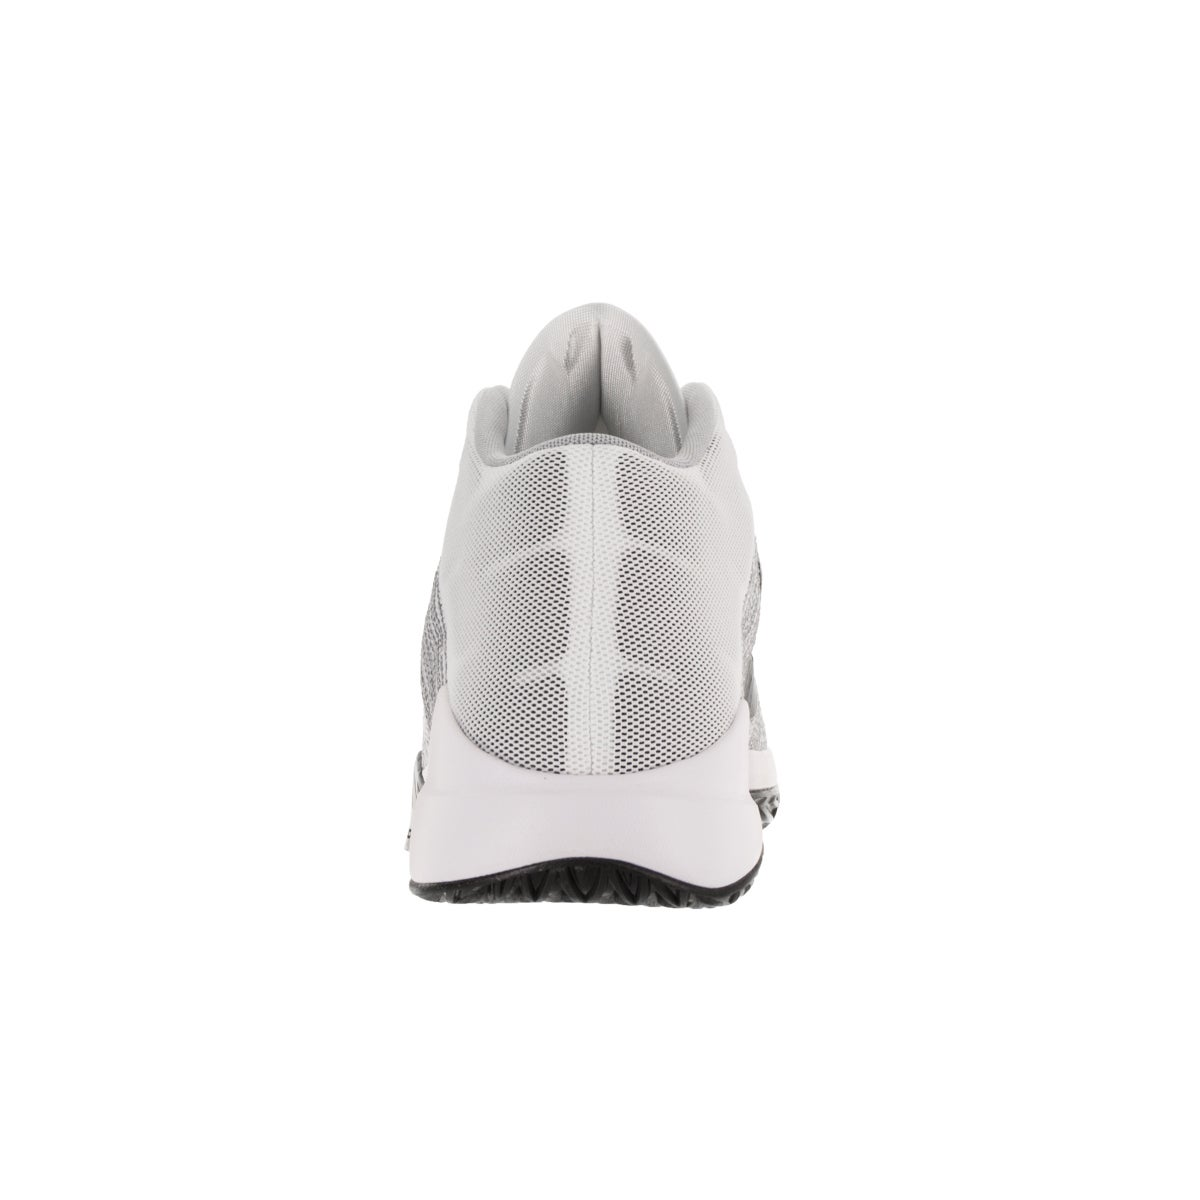 a894c67afa1e Shop Nike Men s Zoom Ascention White Black Wolf Grey Stealth Basketball Shoe  - Free Shipping Today - Overstock - 12328572